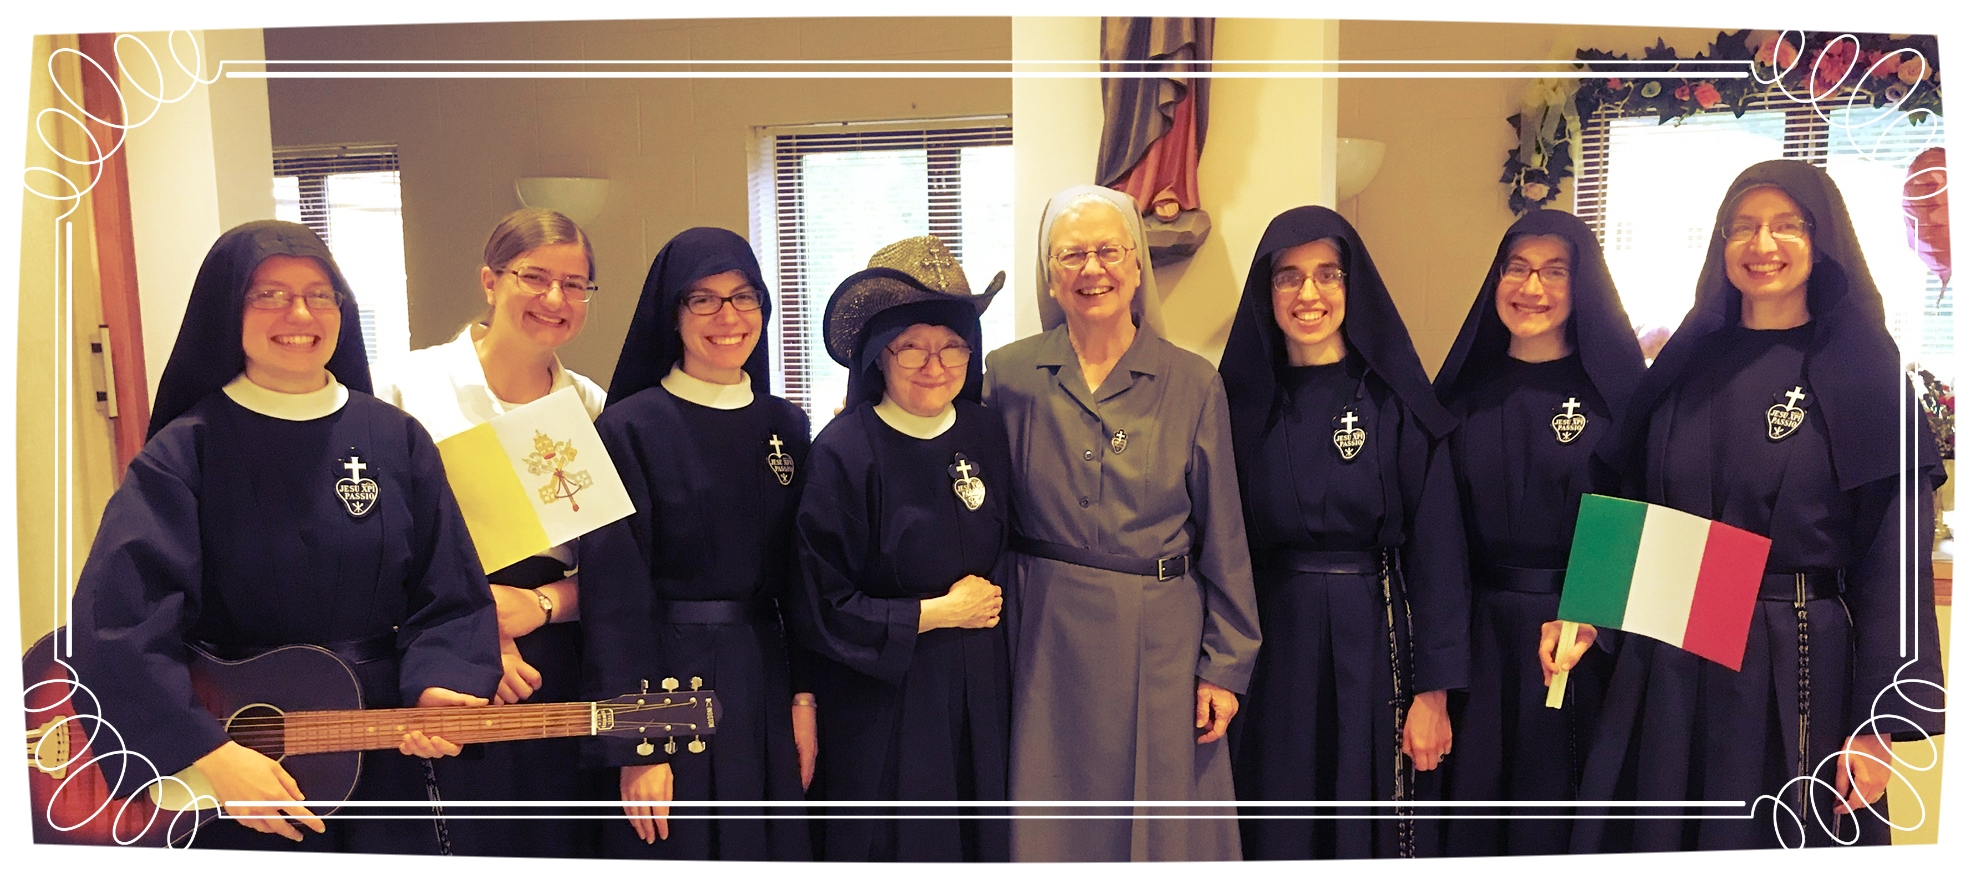 Sr. Frances Marie as Mother Catherine Marie, Theresa &Sr. Maria Faustina as the chorus, the  real Mother Catherine Marie with Sr. Joan Mary, and Sr. Mary Andrea, Sr. Lucia Marie, & Sr. Cecilia Maria as the Lucca nuns